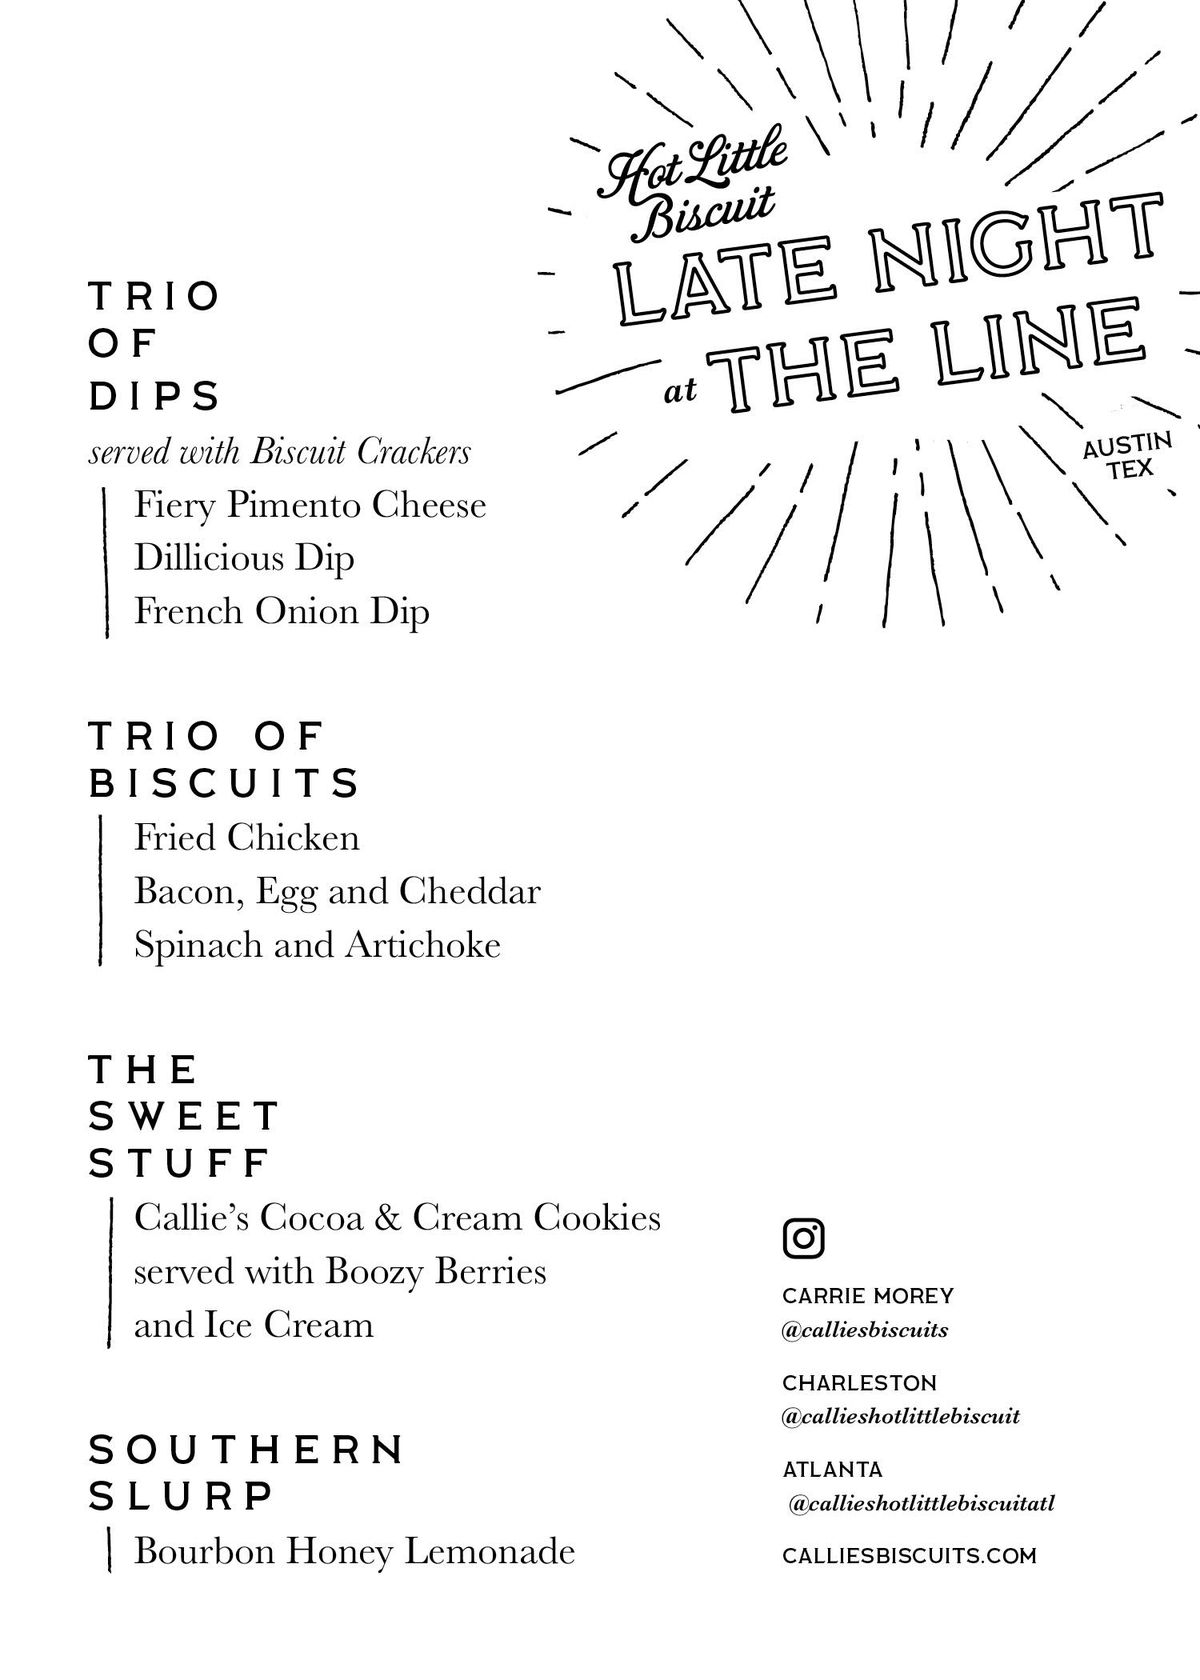 Callie's Hot Little Biscuit's menu for its Line Hotel pop-up